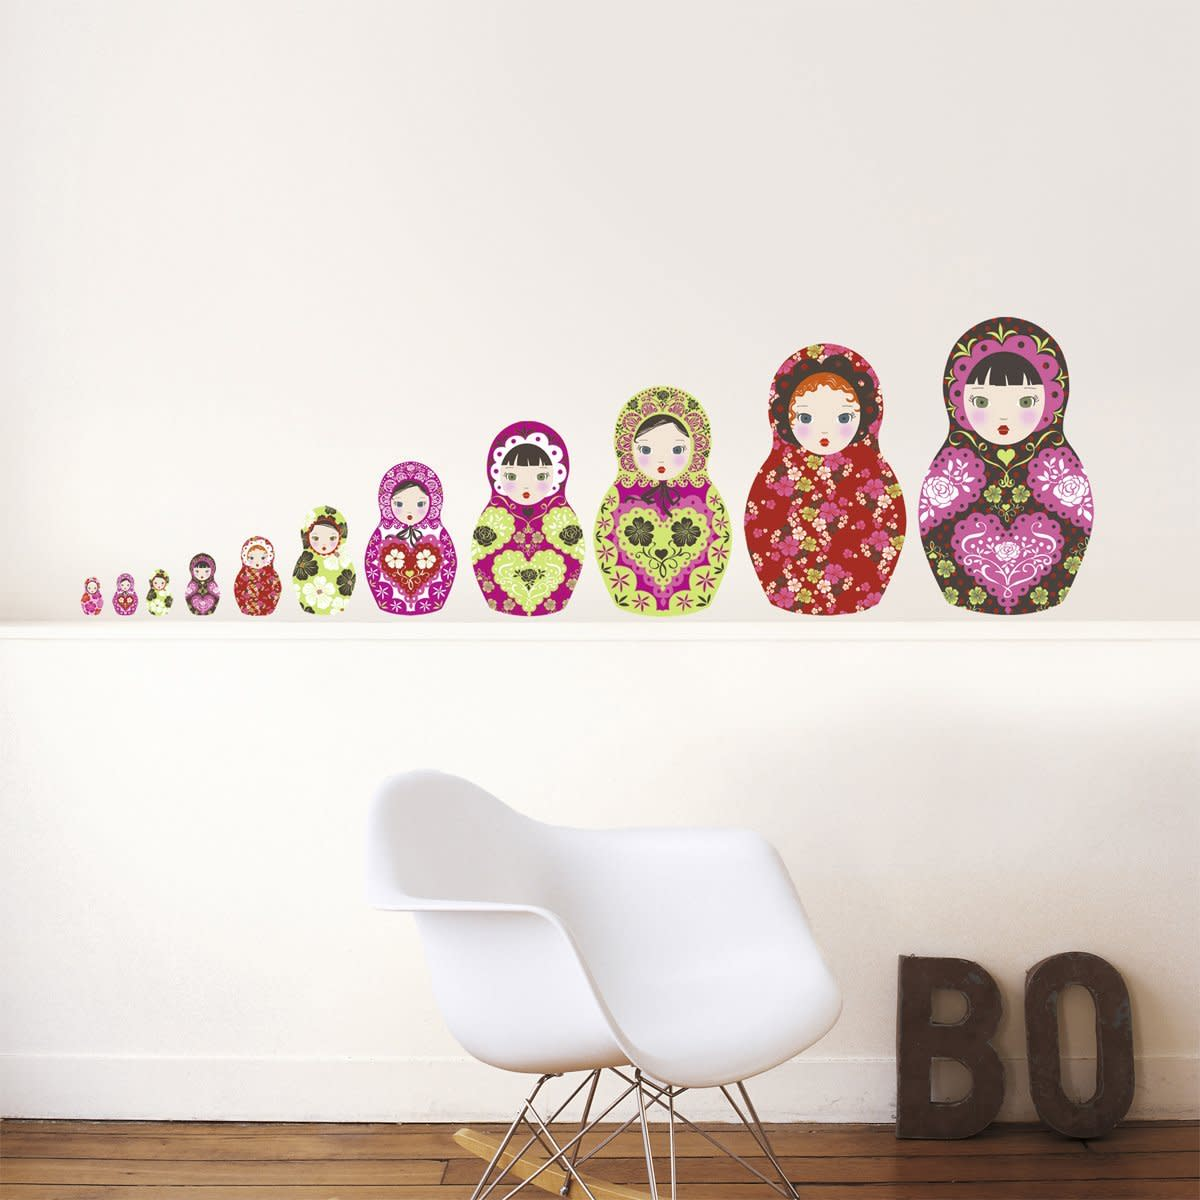 These large wall stickers with whimsical prints will make a big impact in your Russian doll bedroom or nursery. Perfect to create a dramatic focal wall behind a crib or bed.